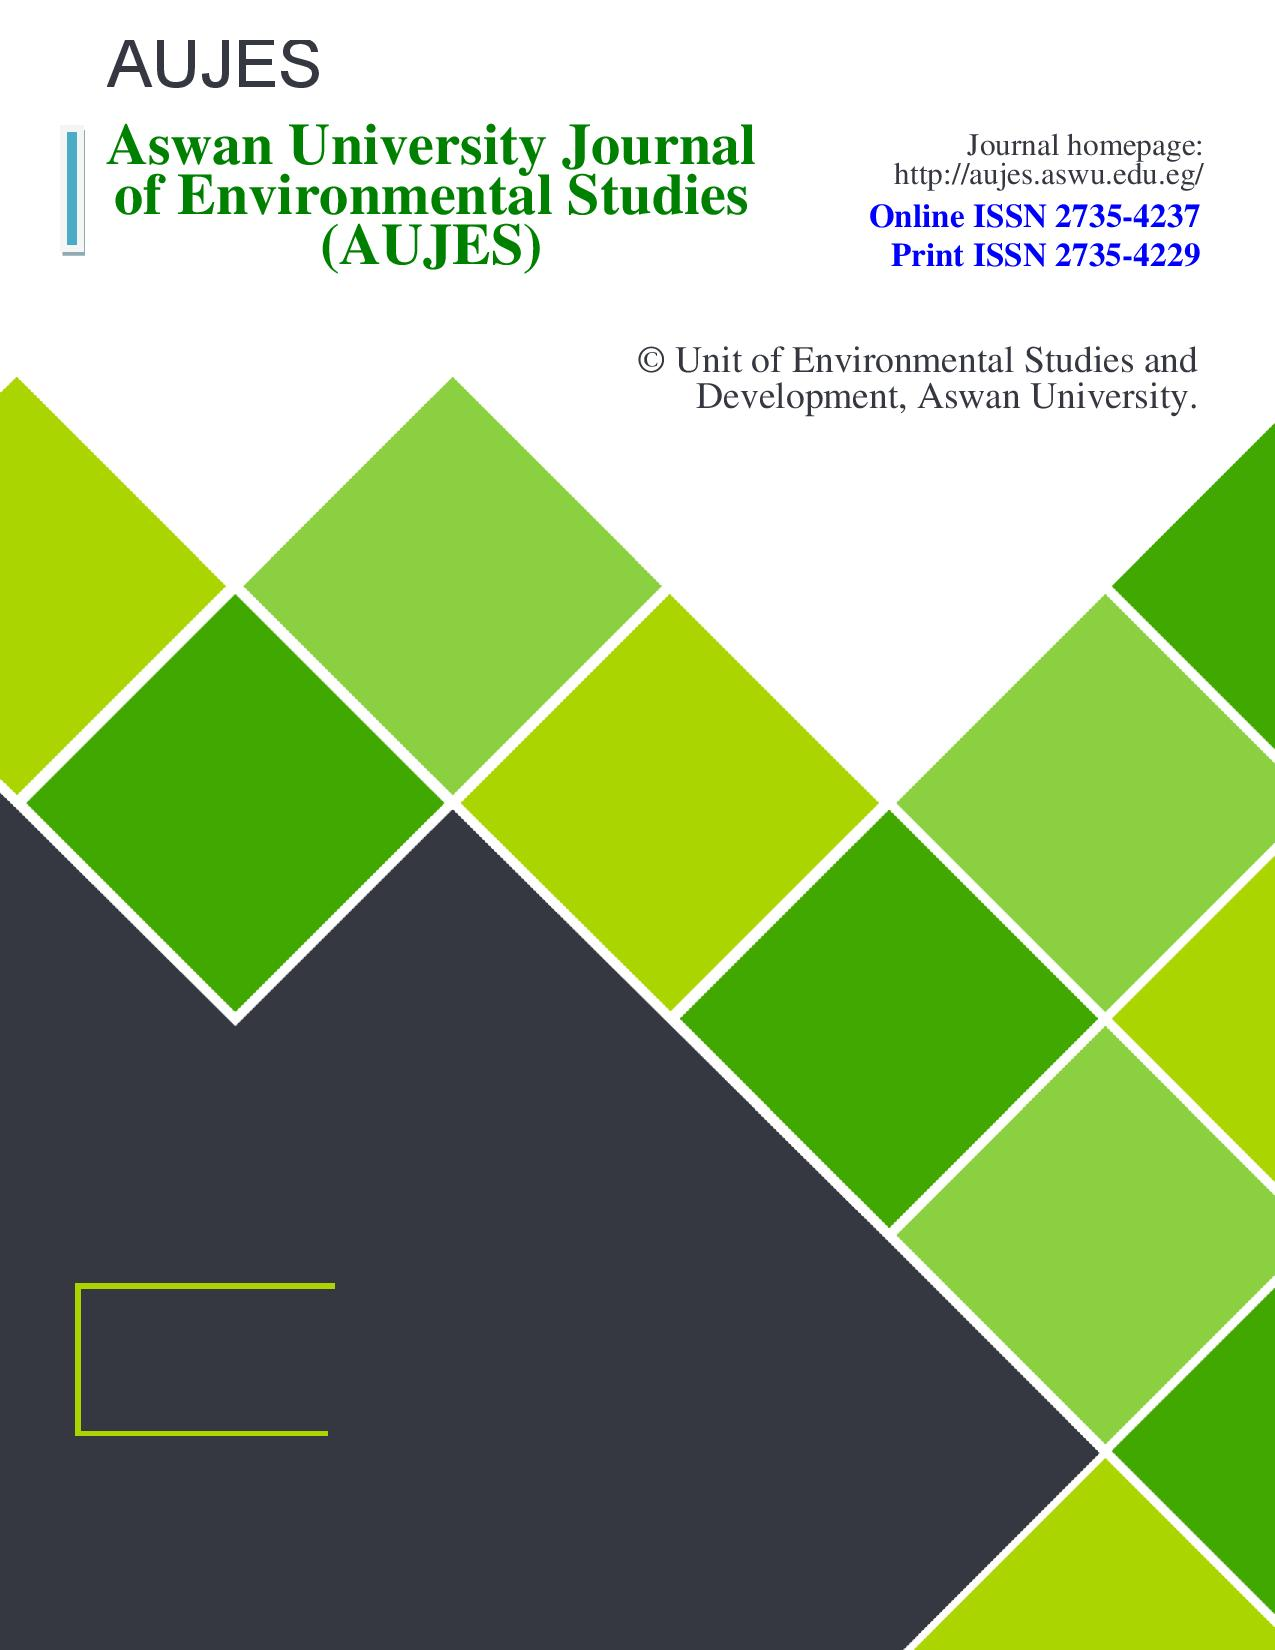 Aswan University Journal of Environmental Studies